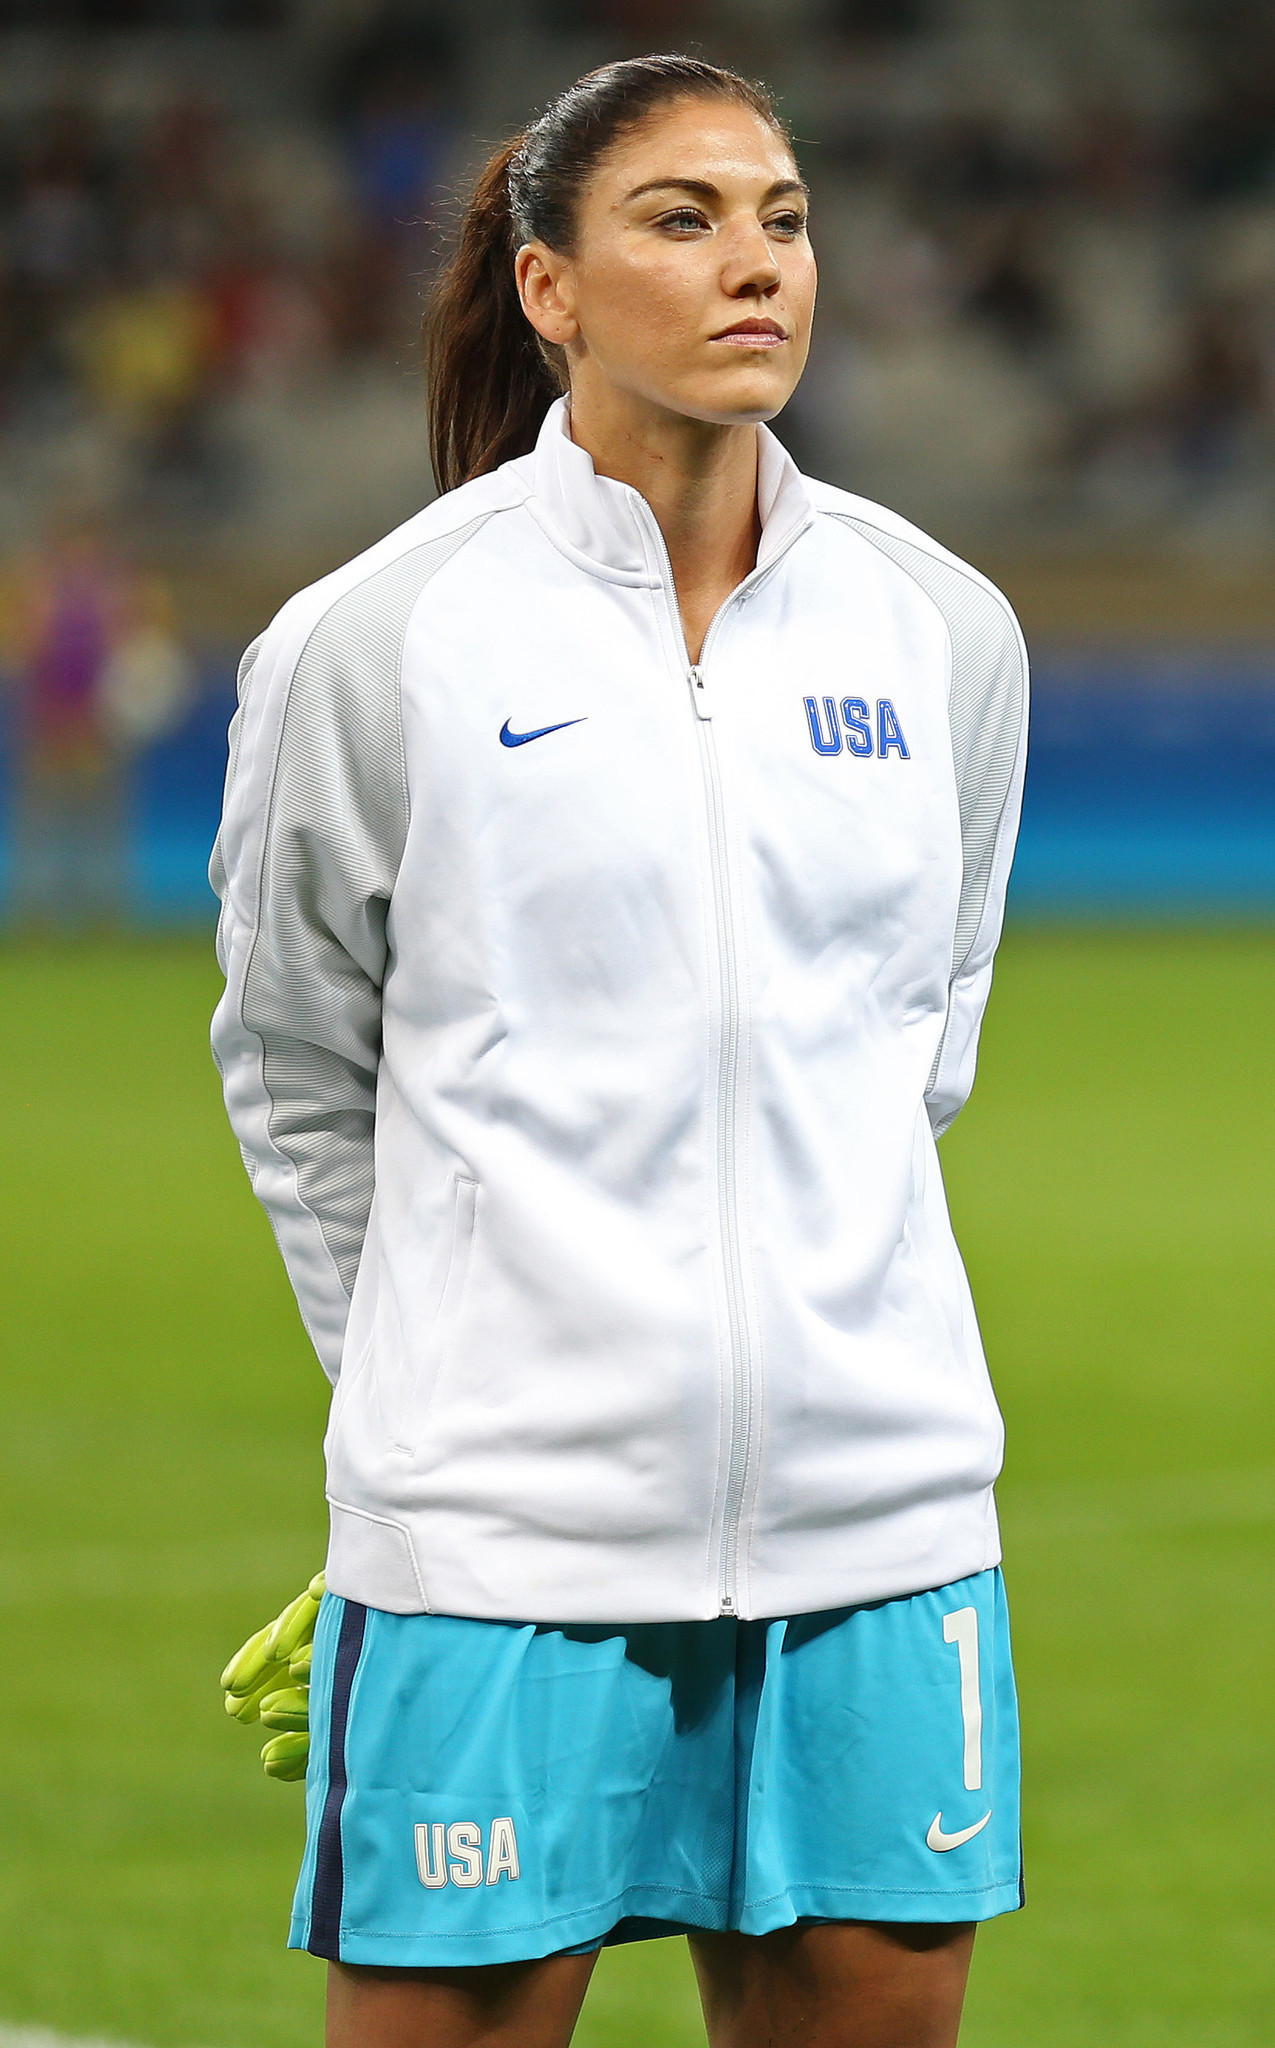 Solo: Watch Hope Solo React To U.S. Soccer Suspension